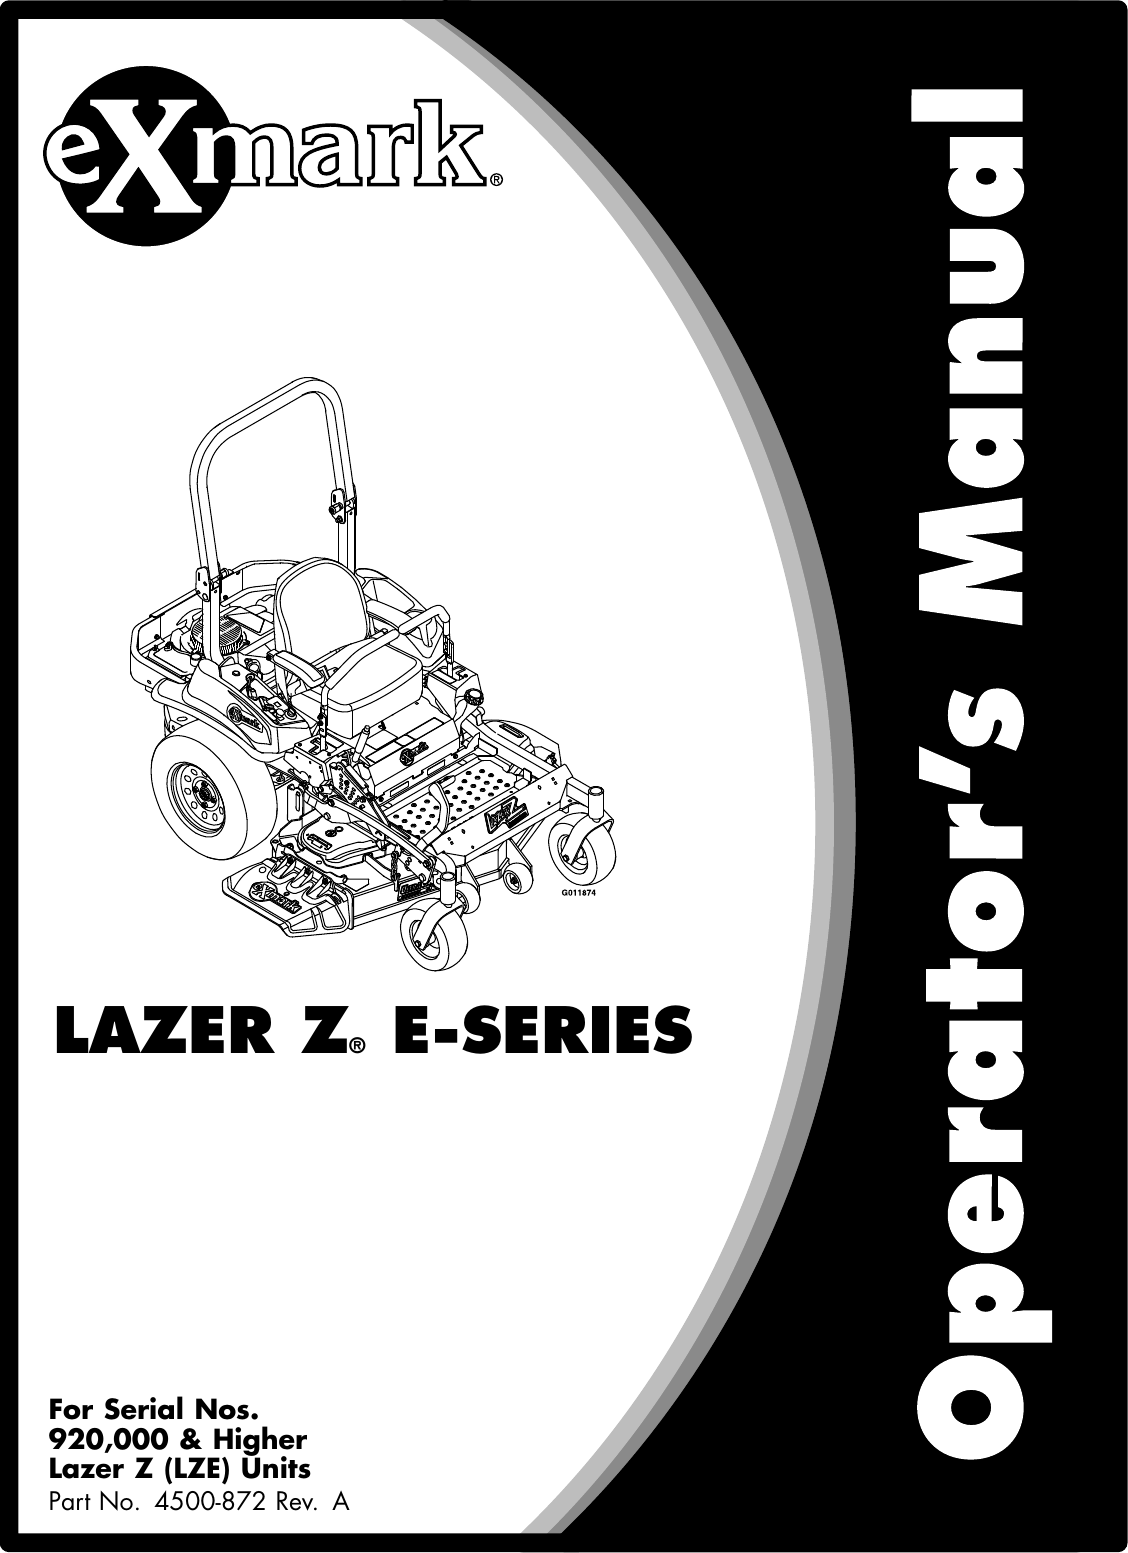 Exmark Lazer Z 4500 872 Users Manual Wiring Diagram